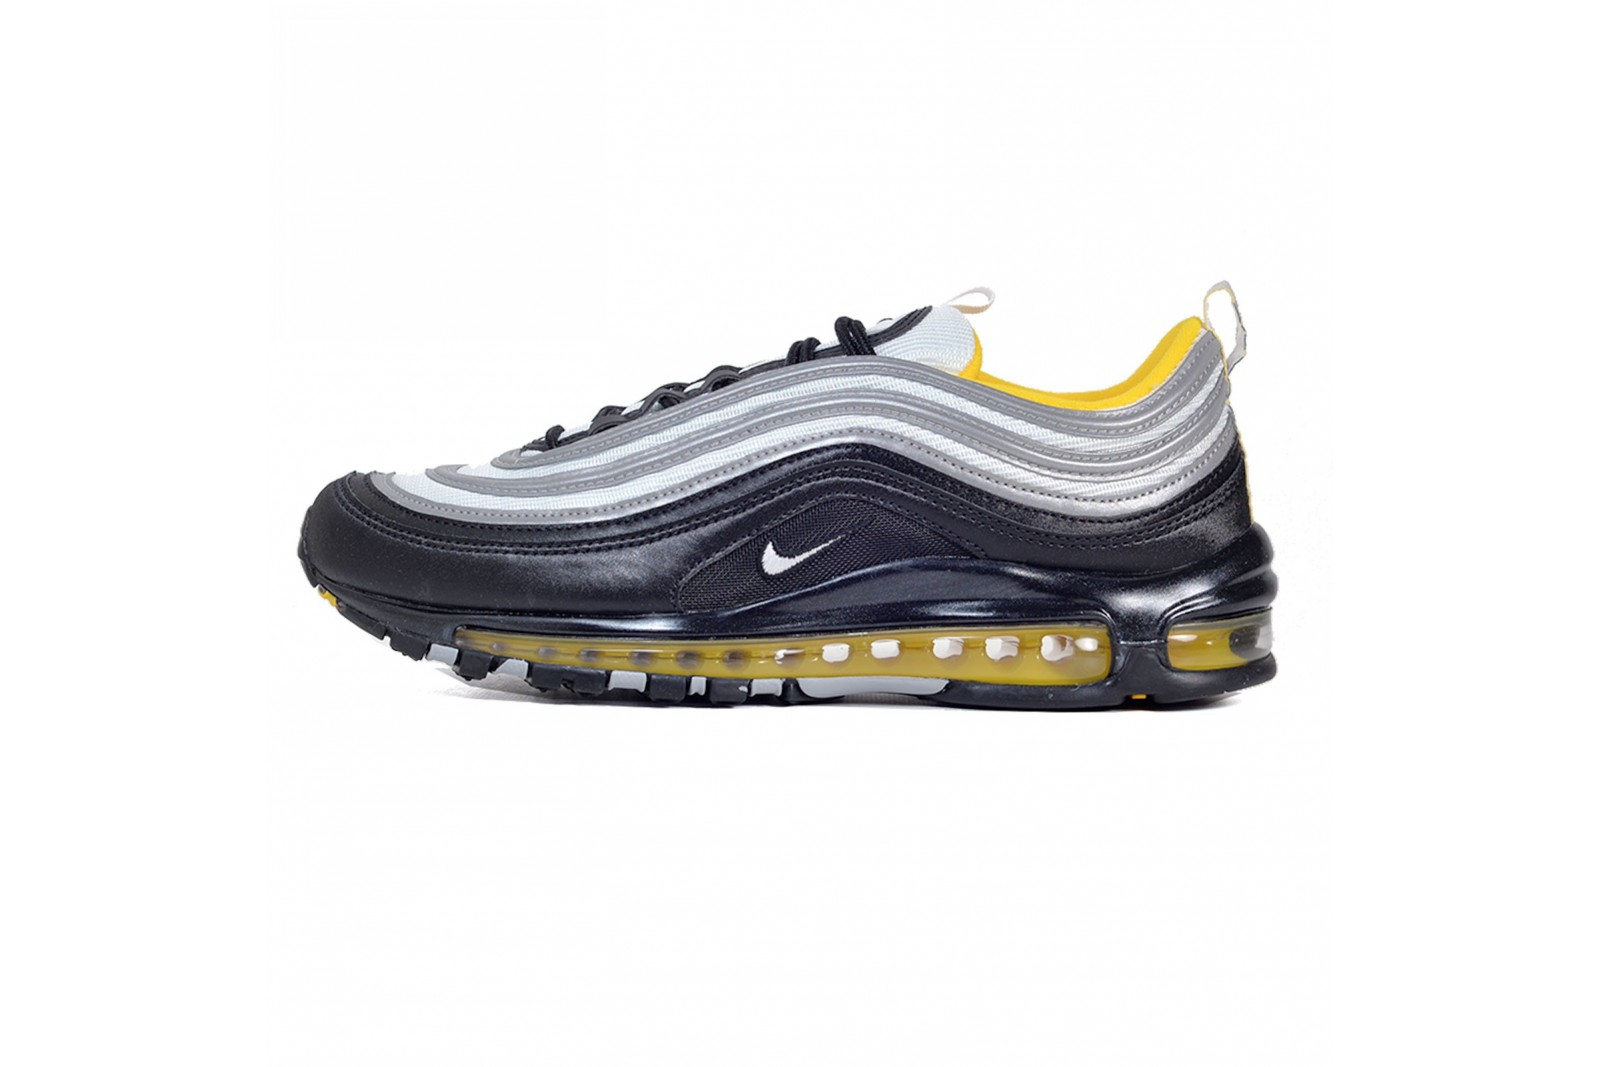 22f424284631 NIKE AIR MAX 97 - Roba SHOES SRL